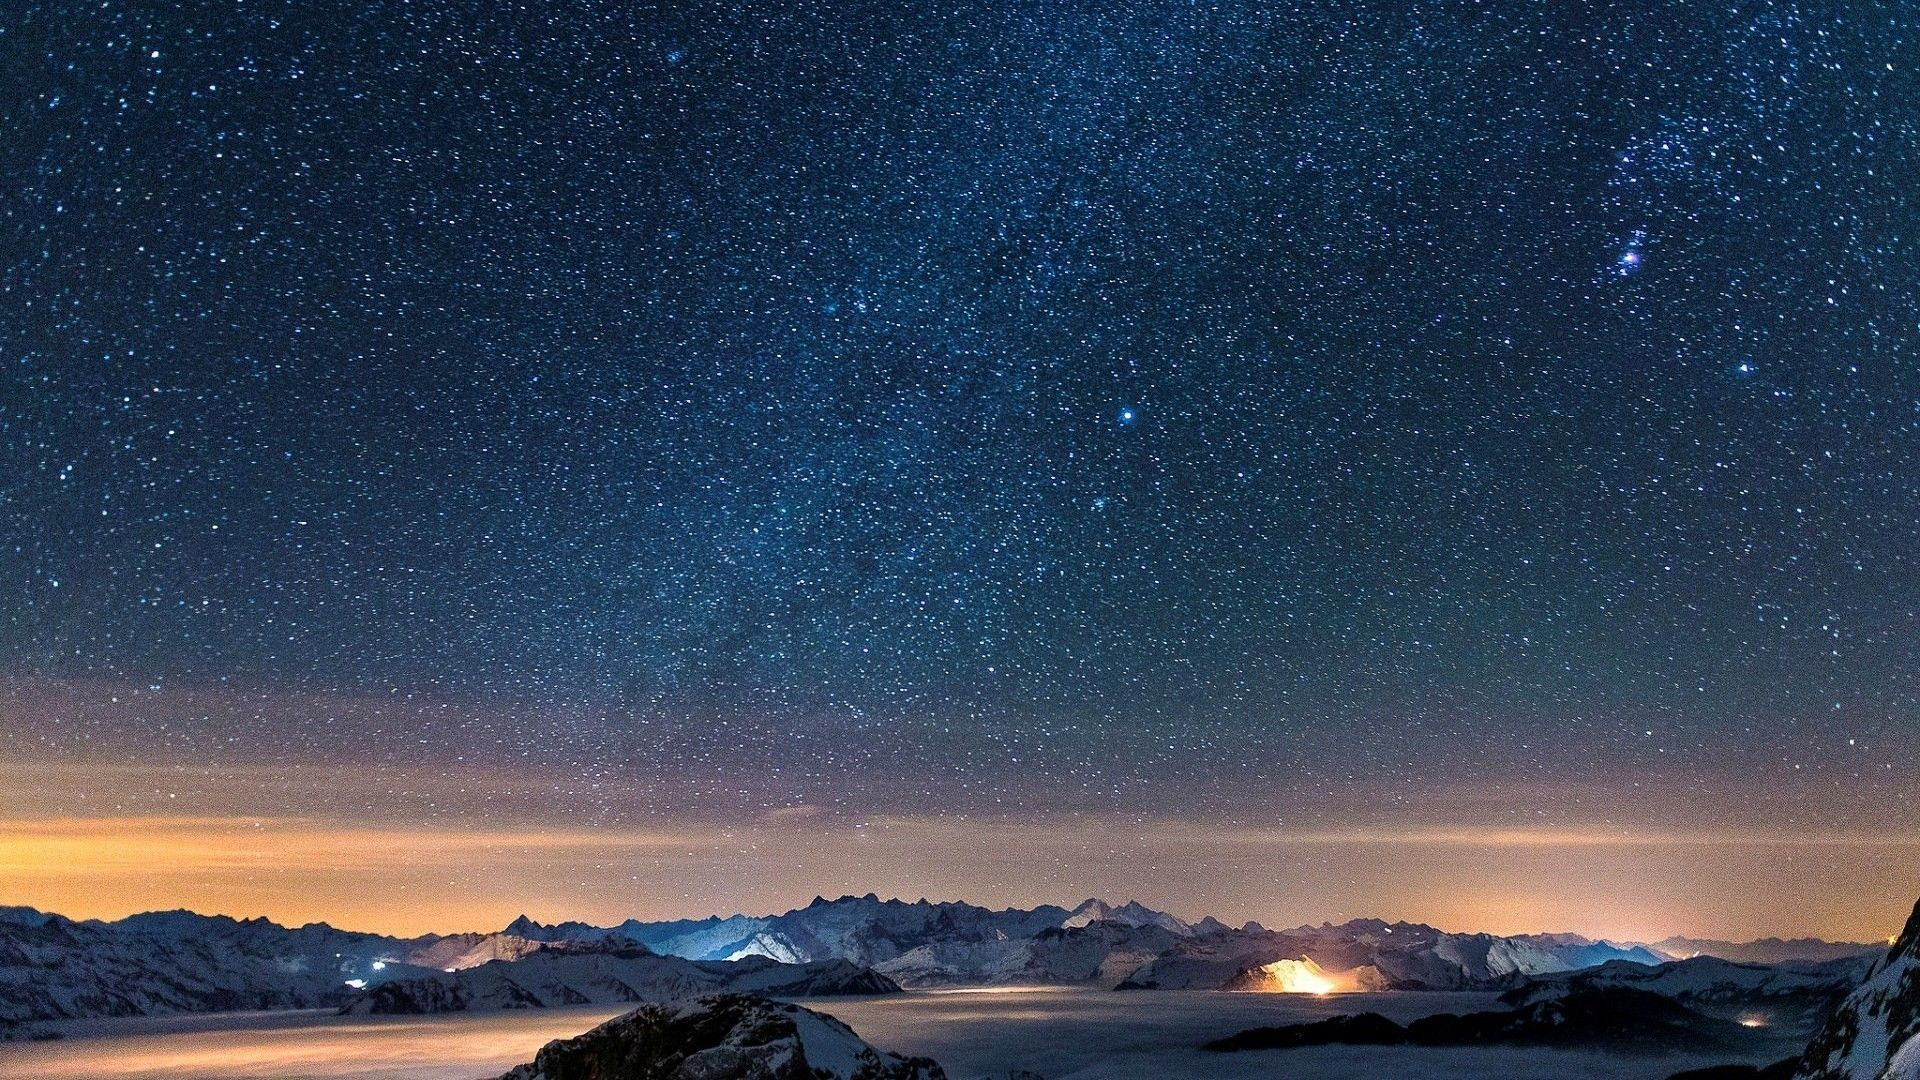 Night Sky Stars Wallpapers Top Free Night Sky Stars Backgrounds Wallpaperaccess